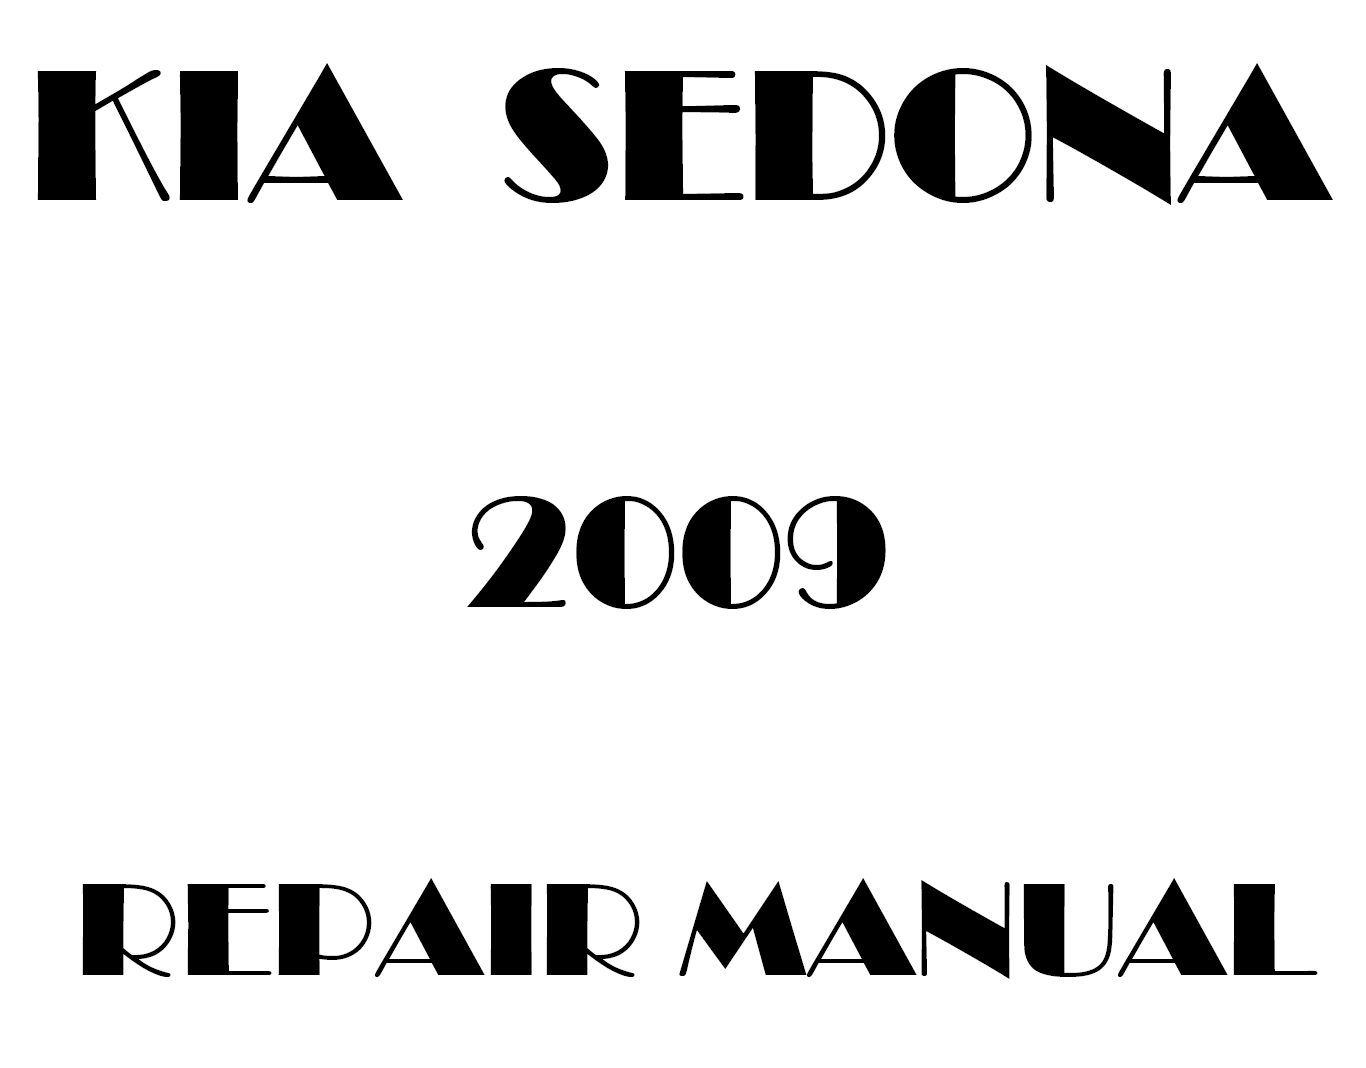 2009 Kia Sedona repair manual